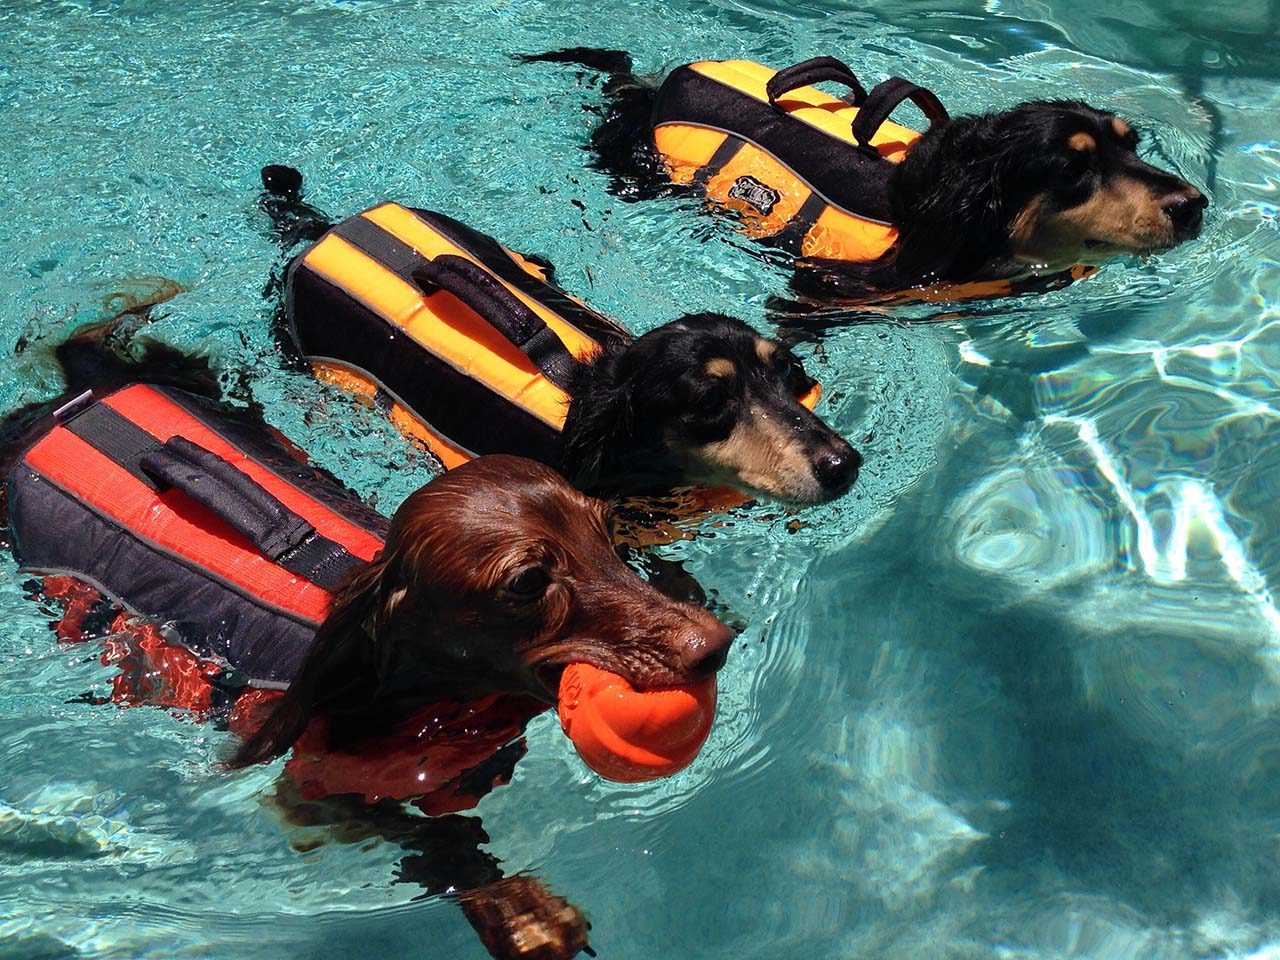 Three dogs in swimming pool wearing life jackets.